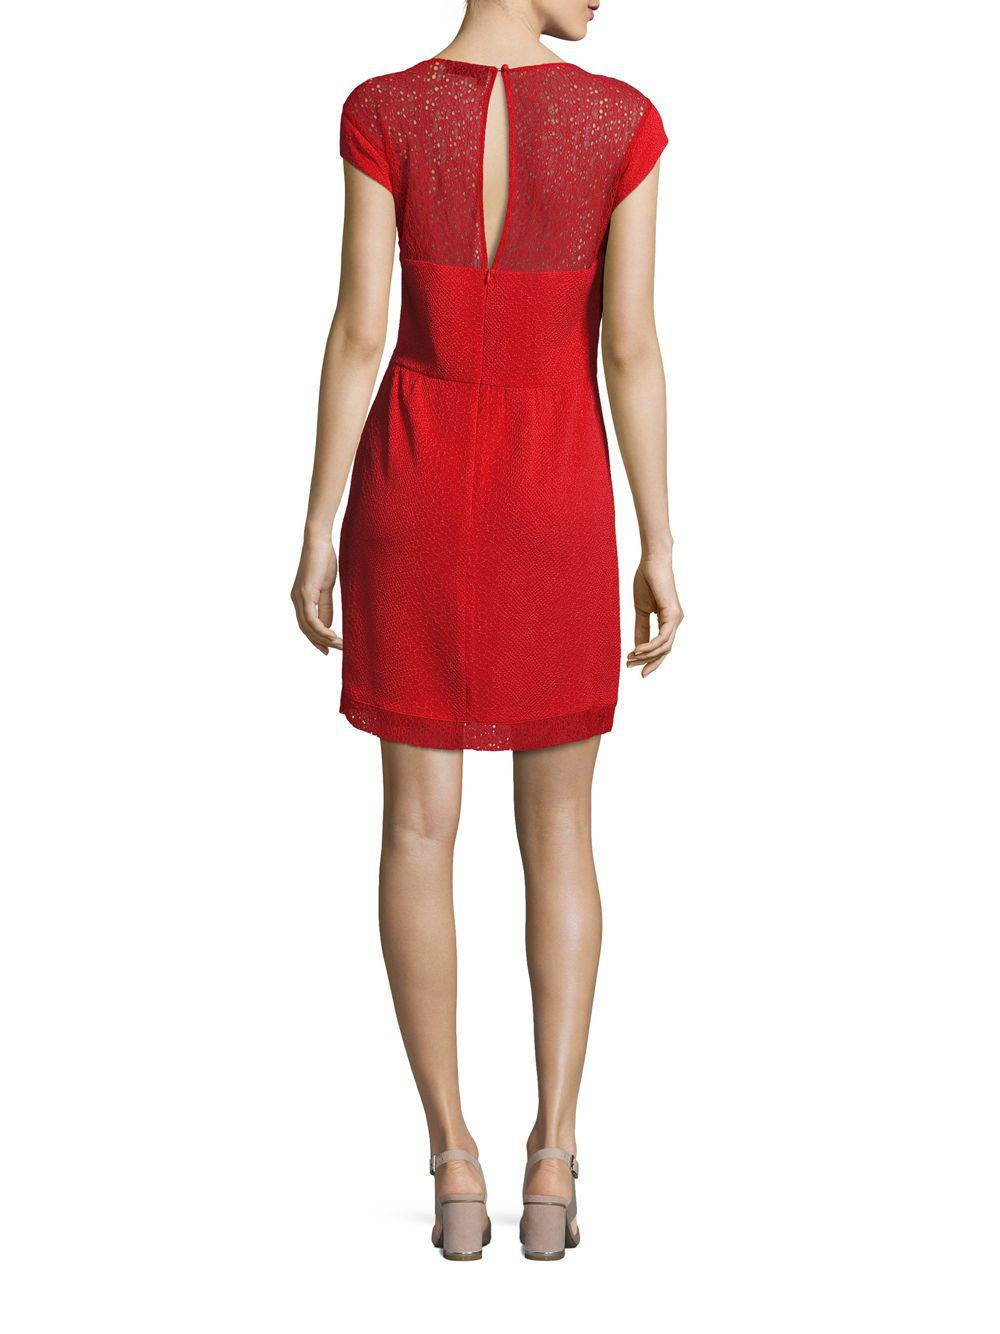 830c7cb8bc0 Lyst - The Kooples Jewelneck Cap-sleeve Dress in Red